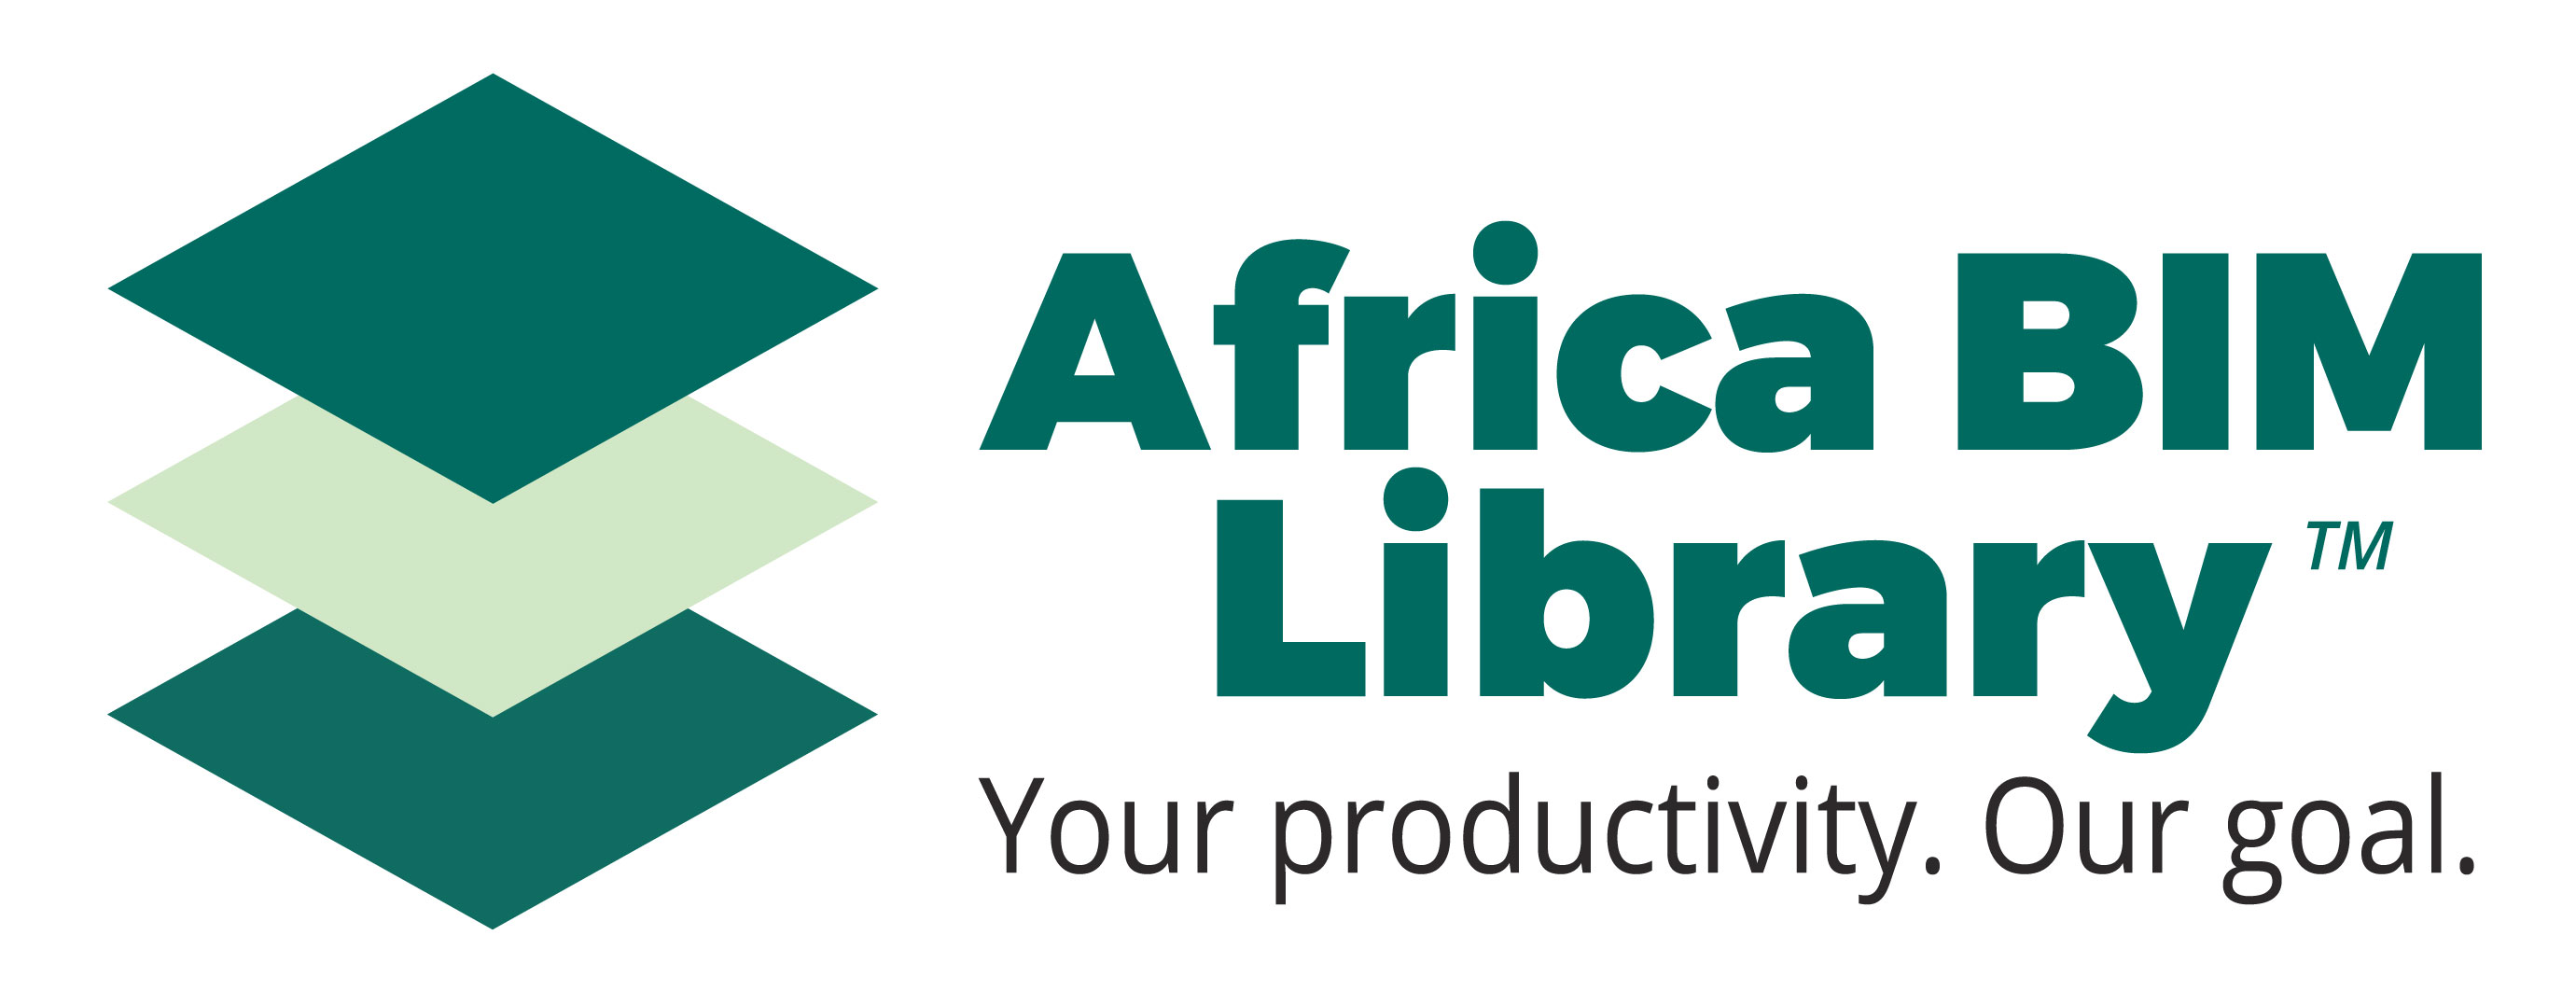 Africa BIM Library   Products from African and Global